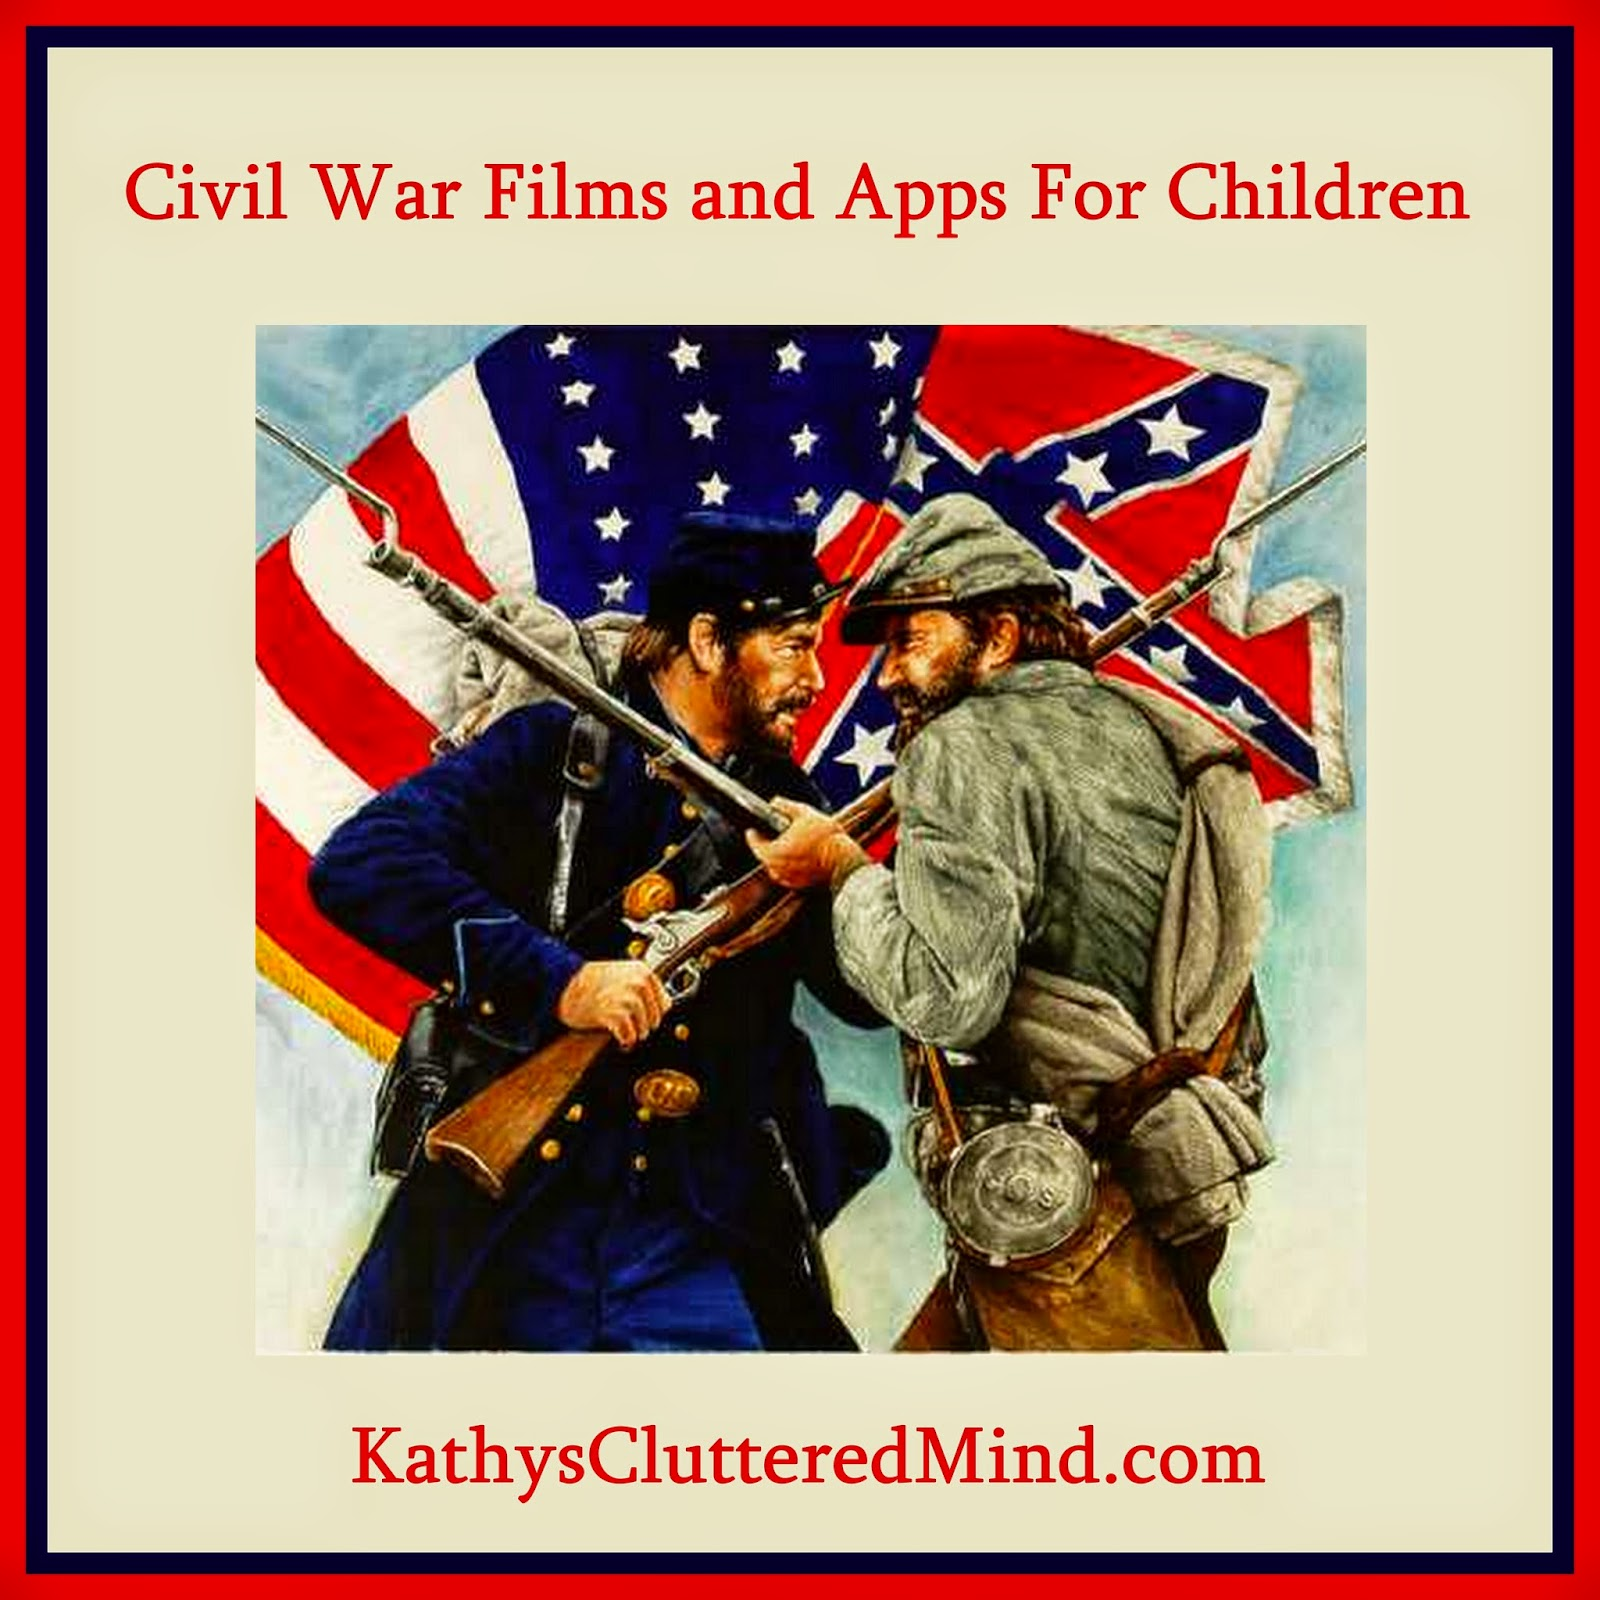 hight resolution of Kathys Cluttered Mind: Civil War Films and Apps For Children